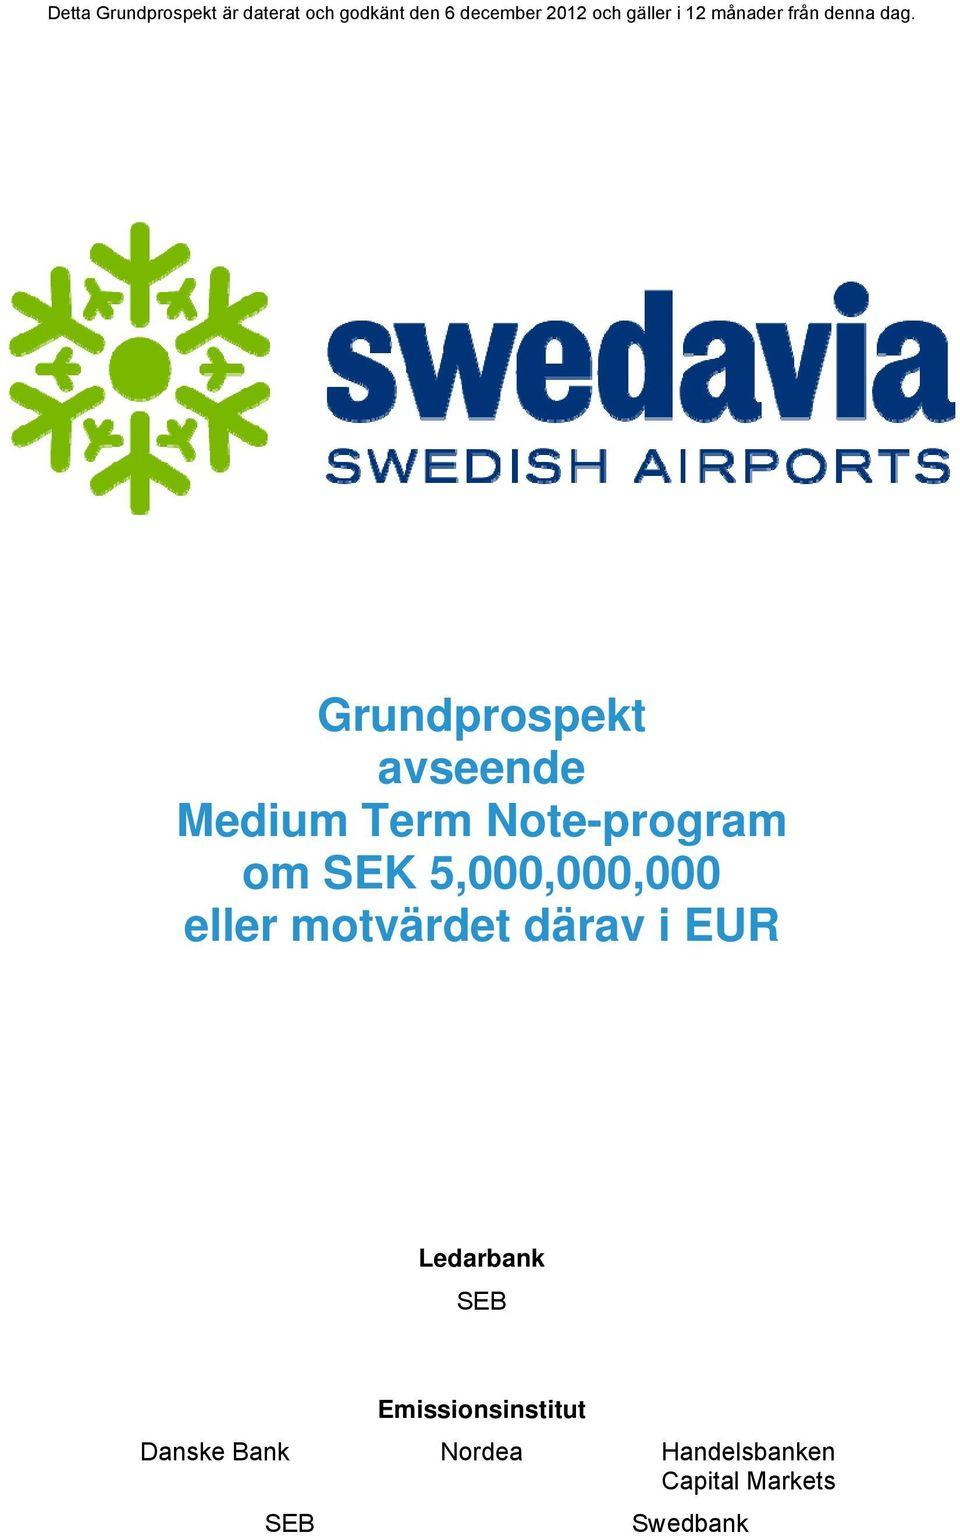 Grundprospekt avseende Medium Term Note-program om SEK 5,000,000,000